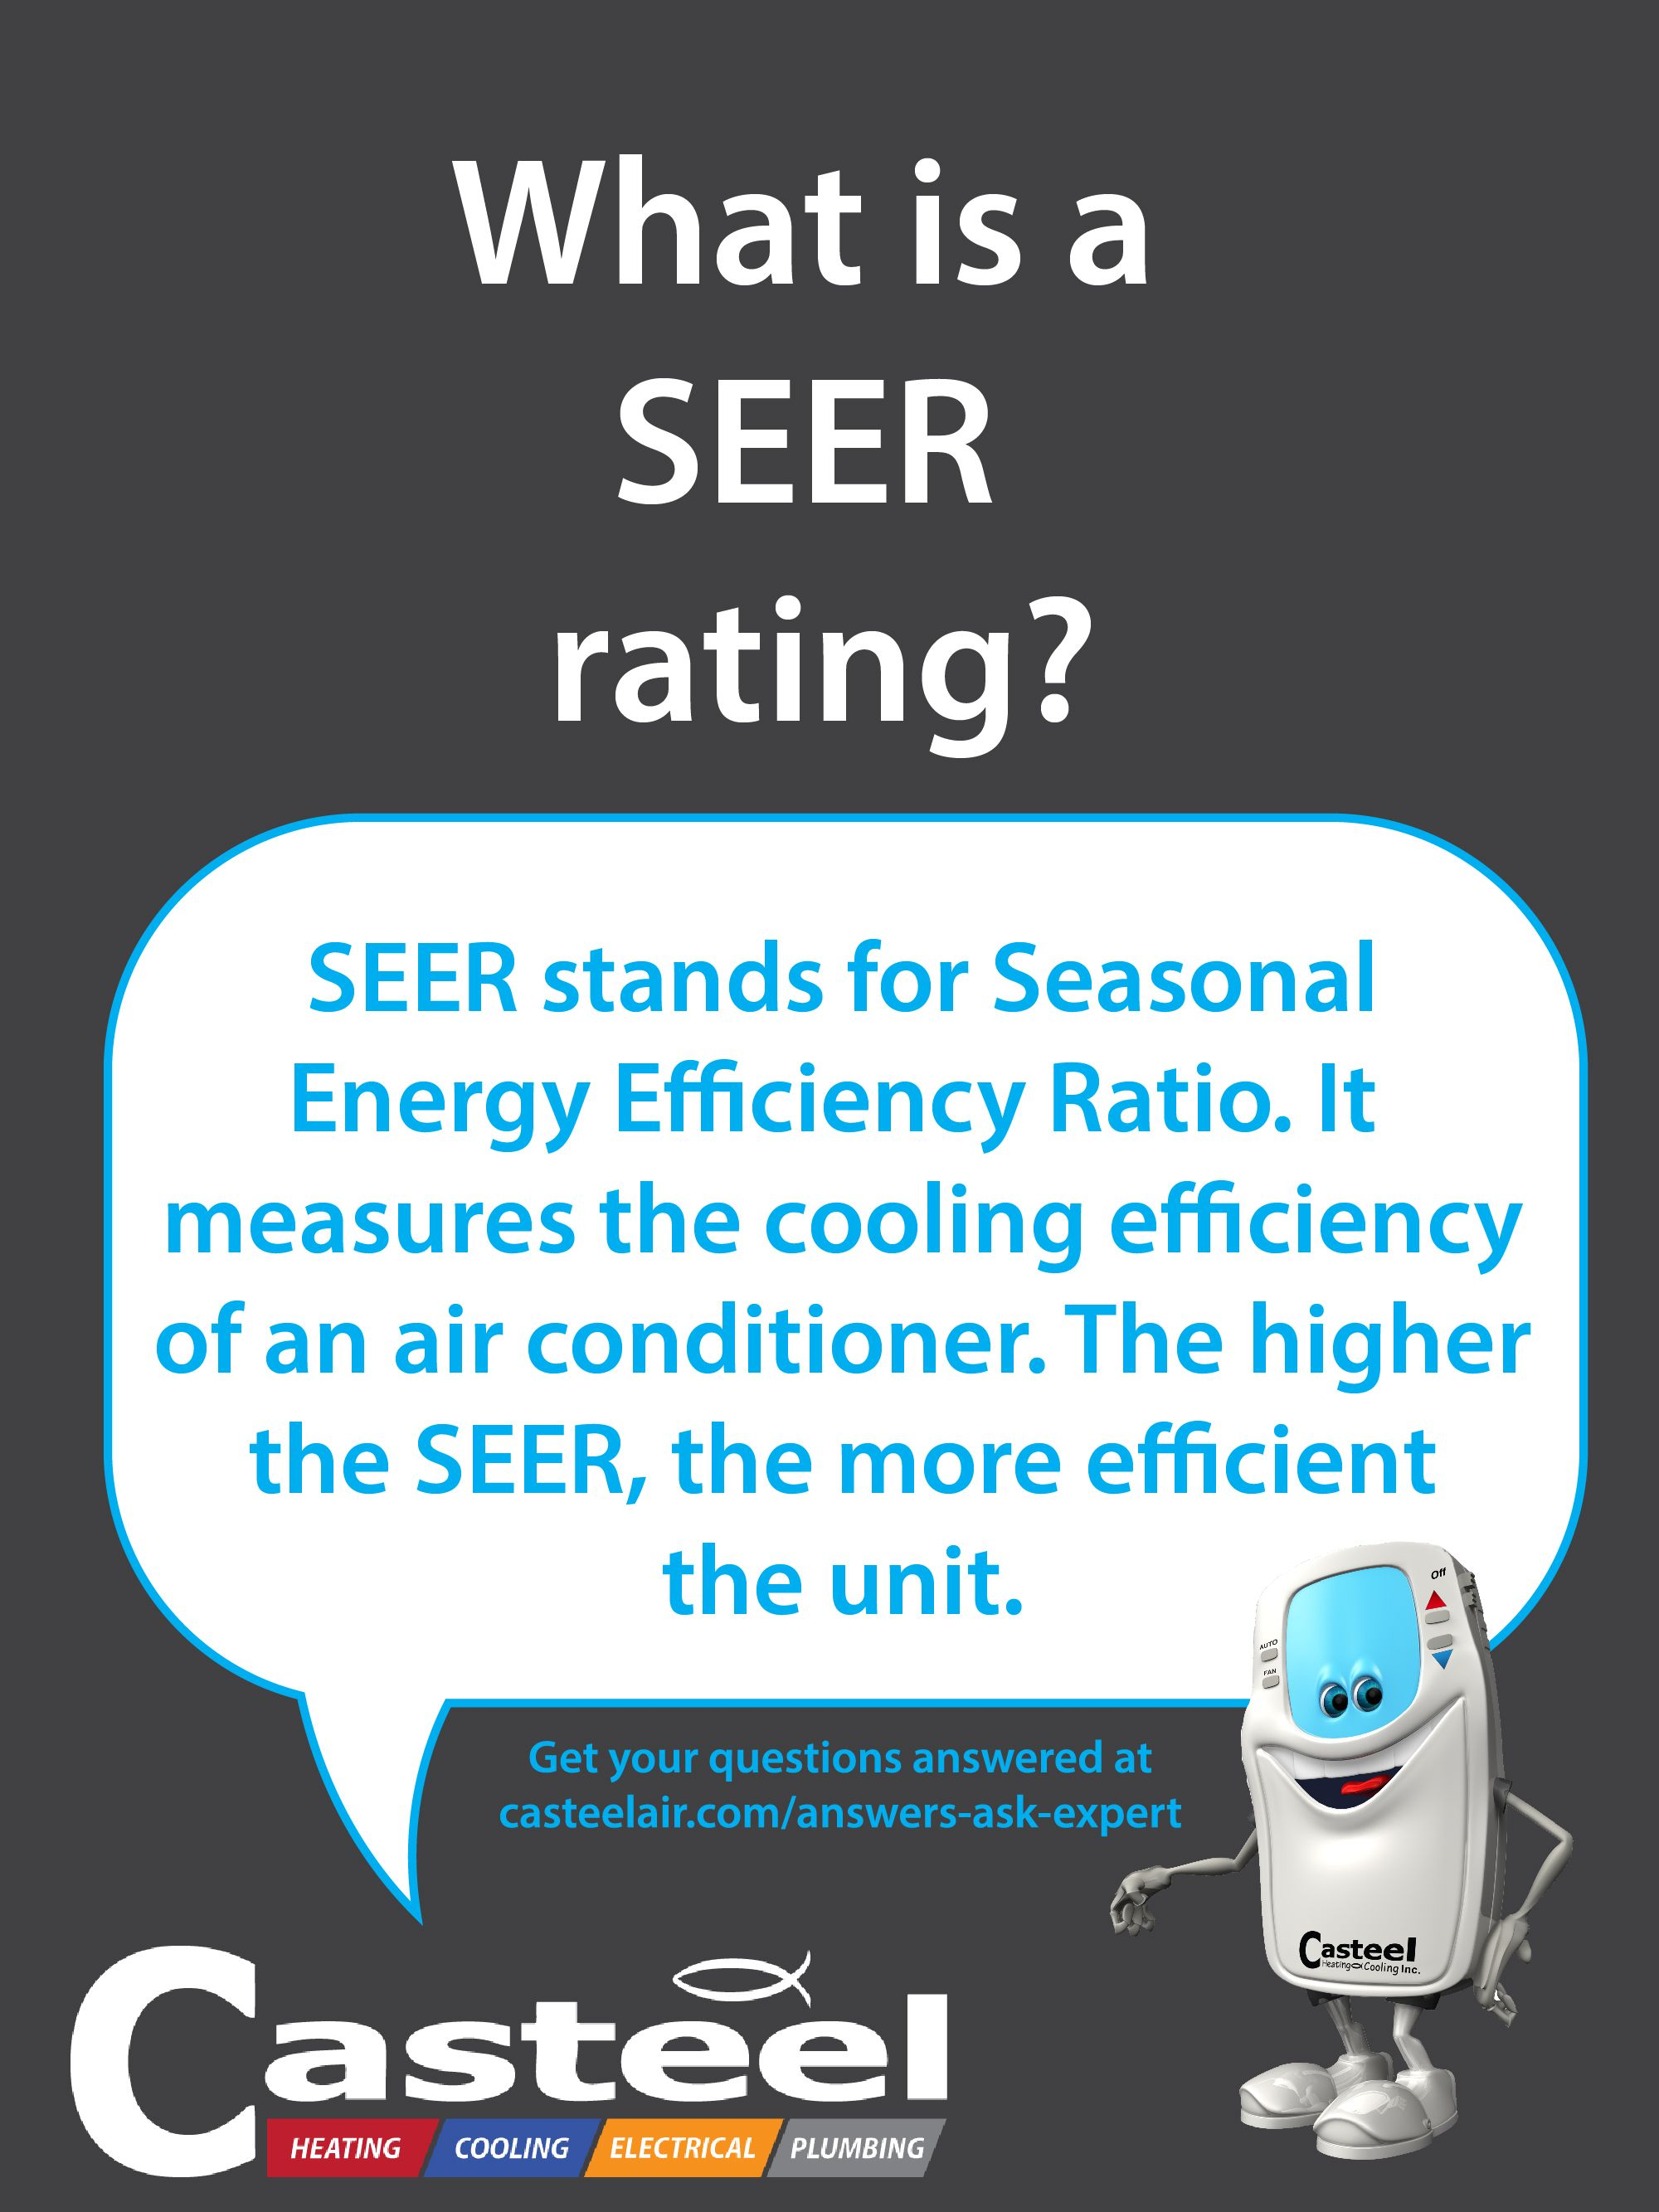 Take the SEER rating into account when you're looking at